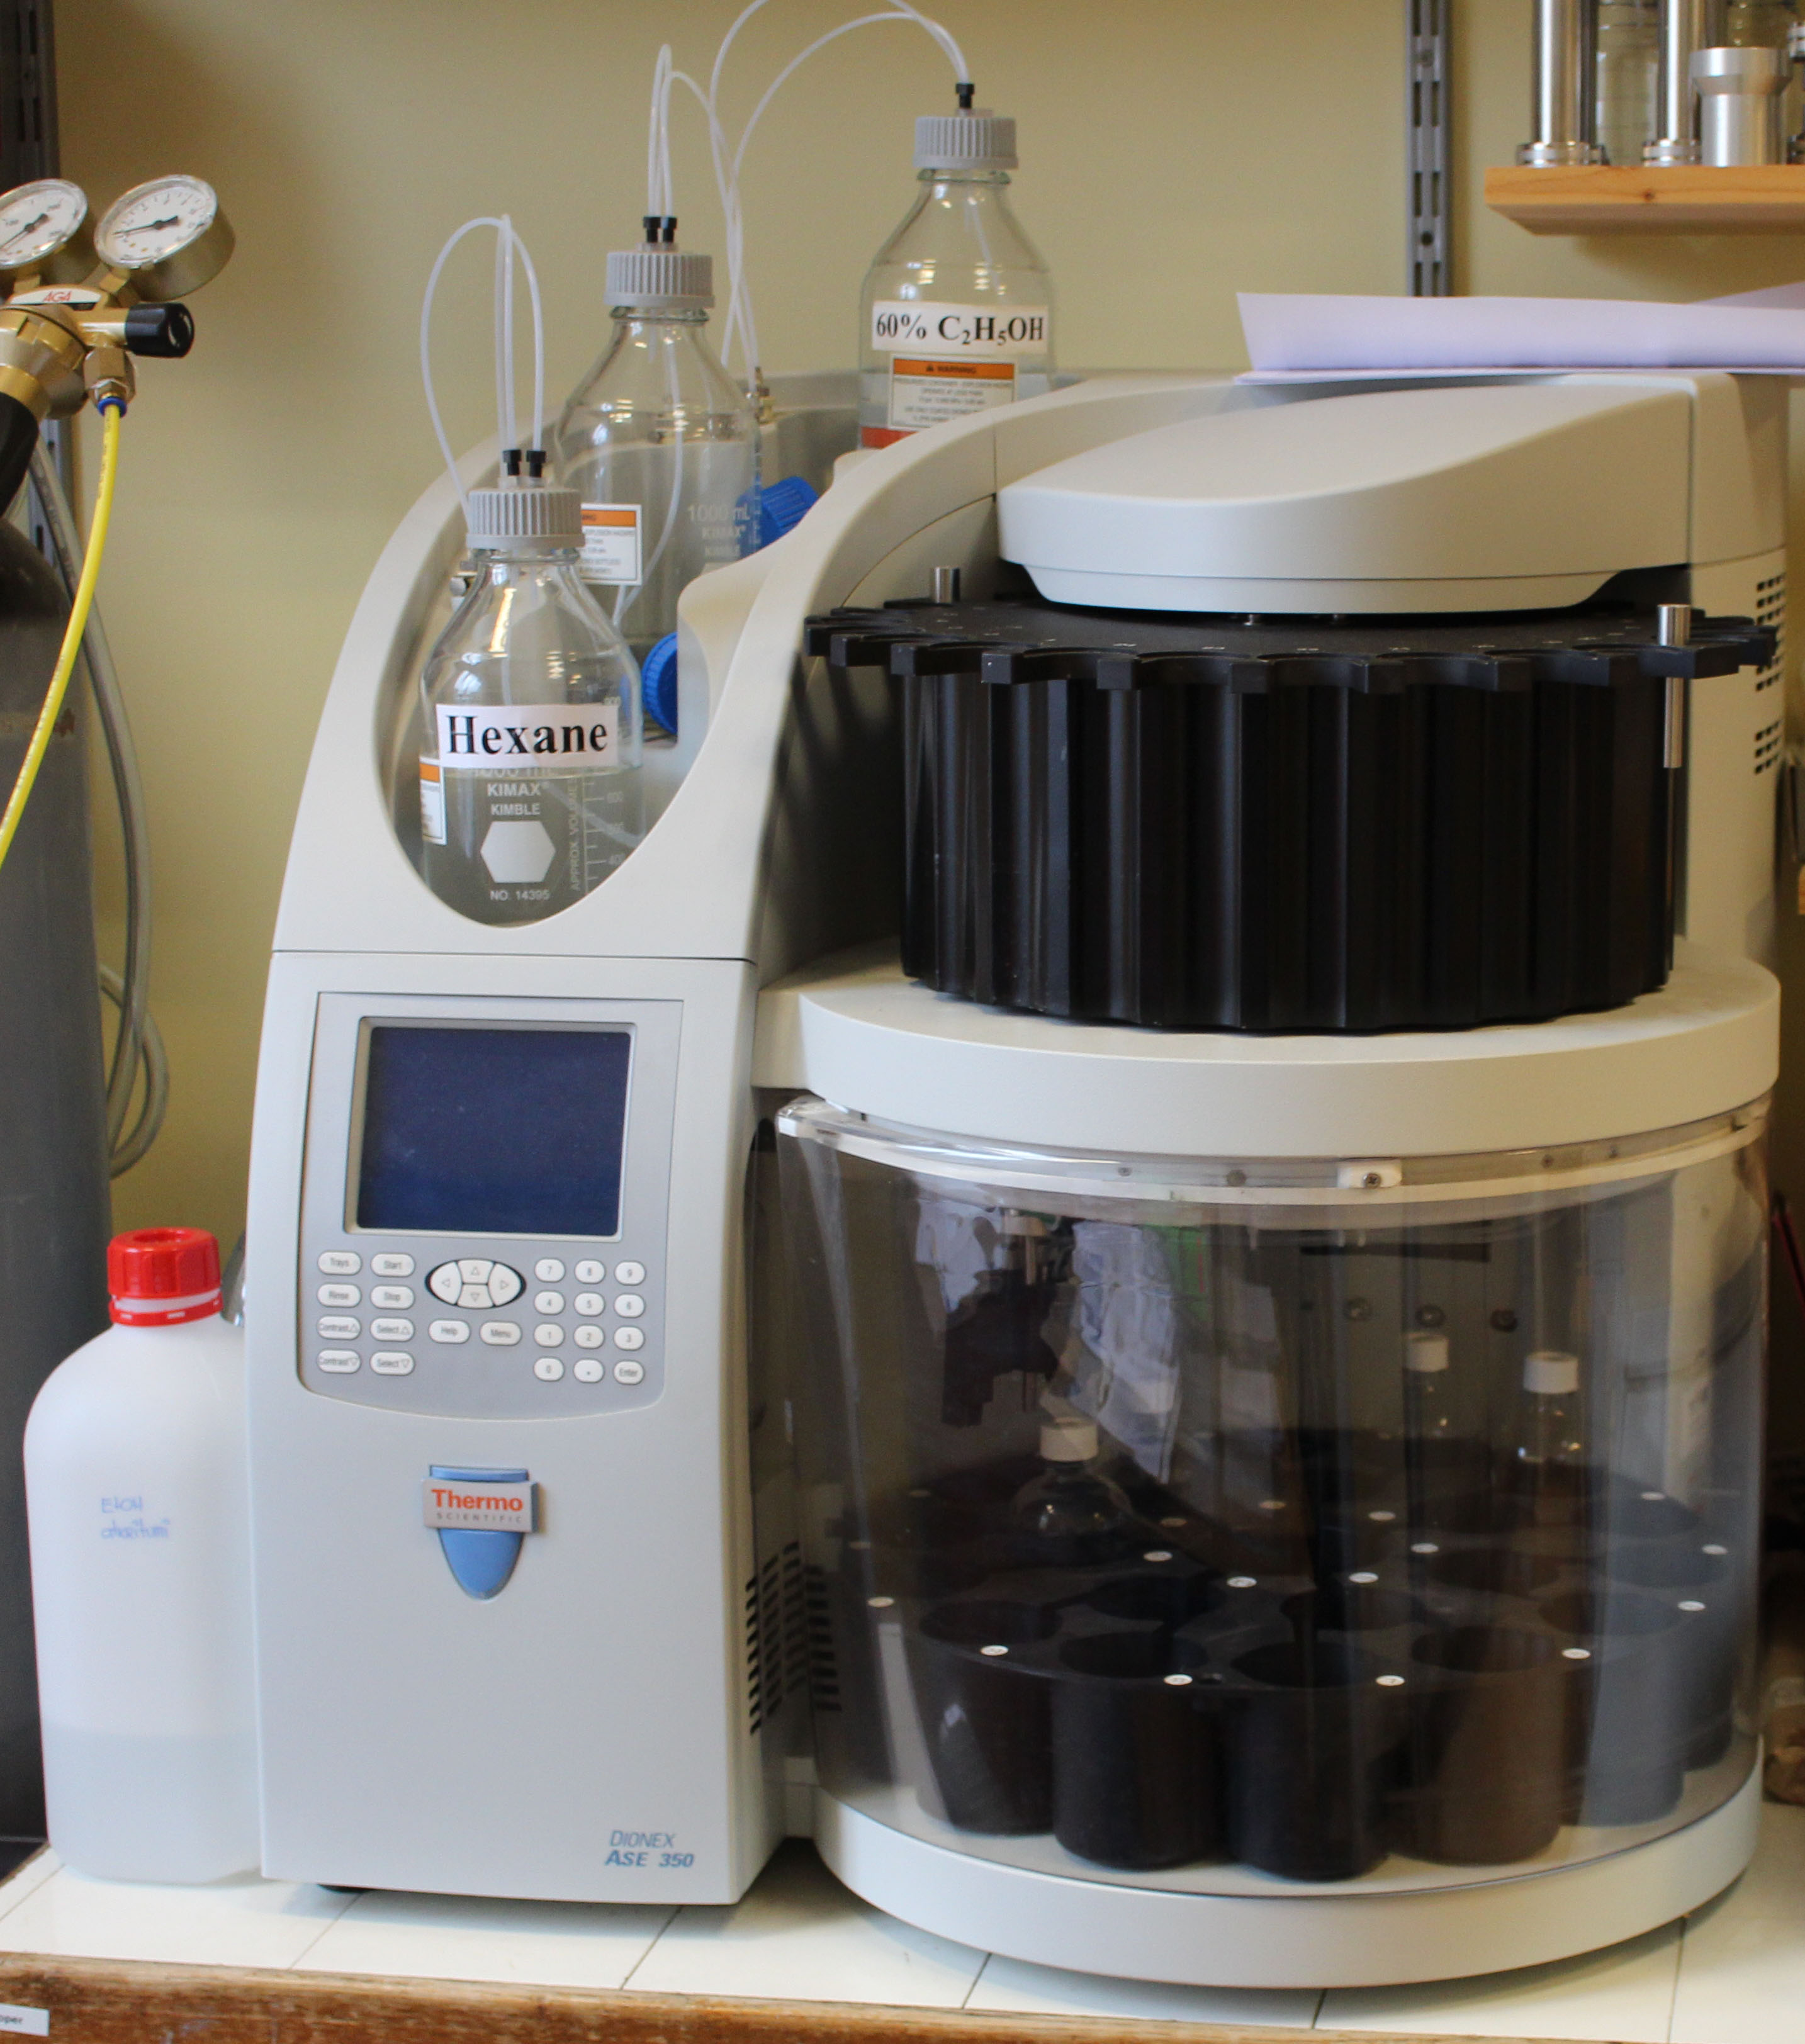 Accelerated Solvent Extractor